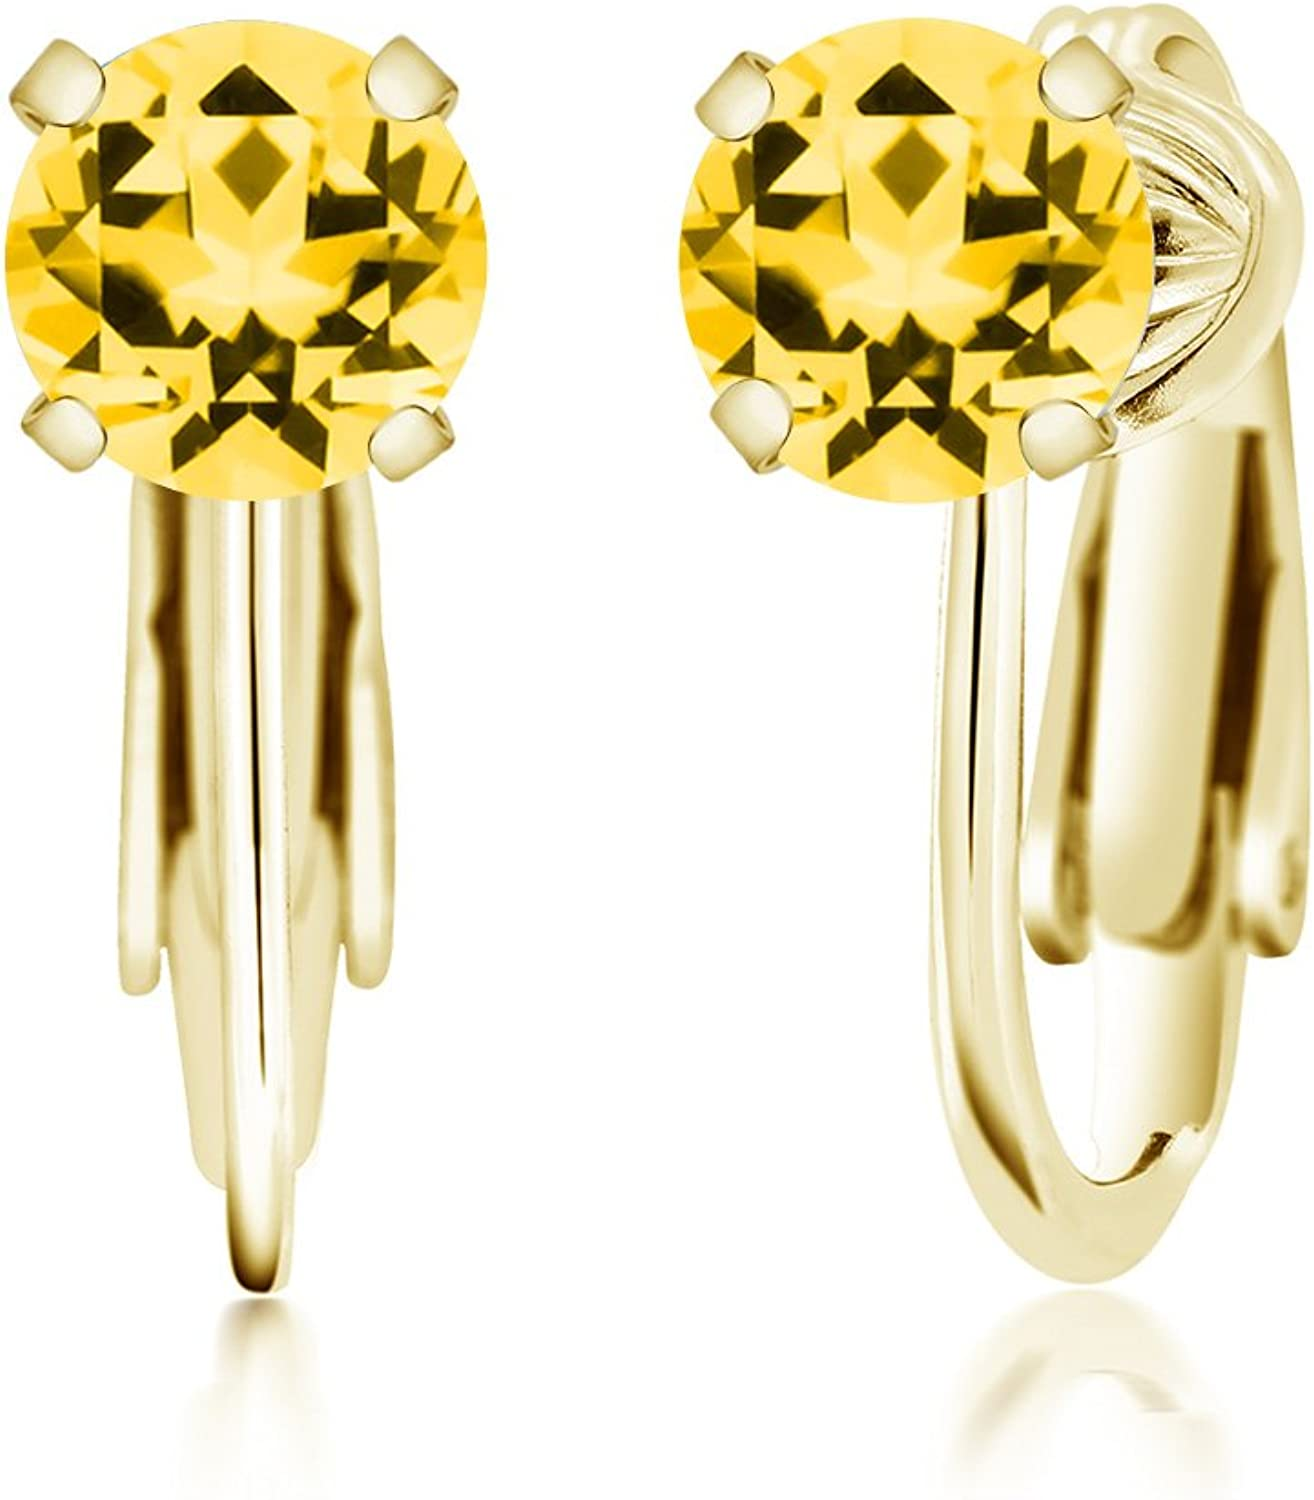 Carlo white 925 Yellow gold Plated Silver Earrings Honey Natural Topaz Cut by Swarovski